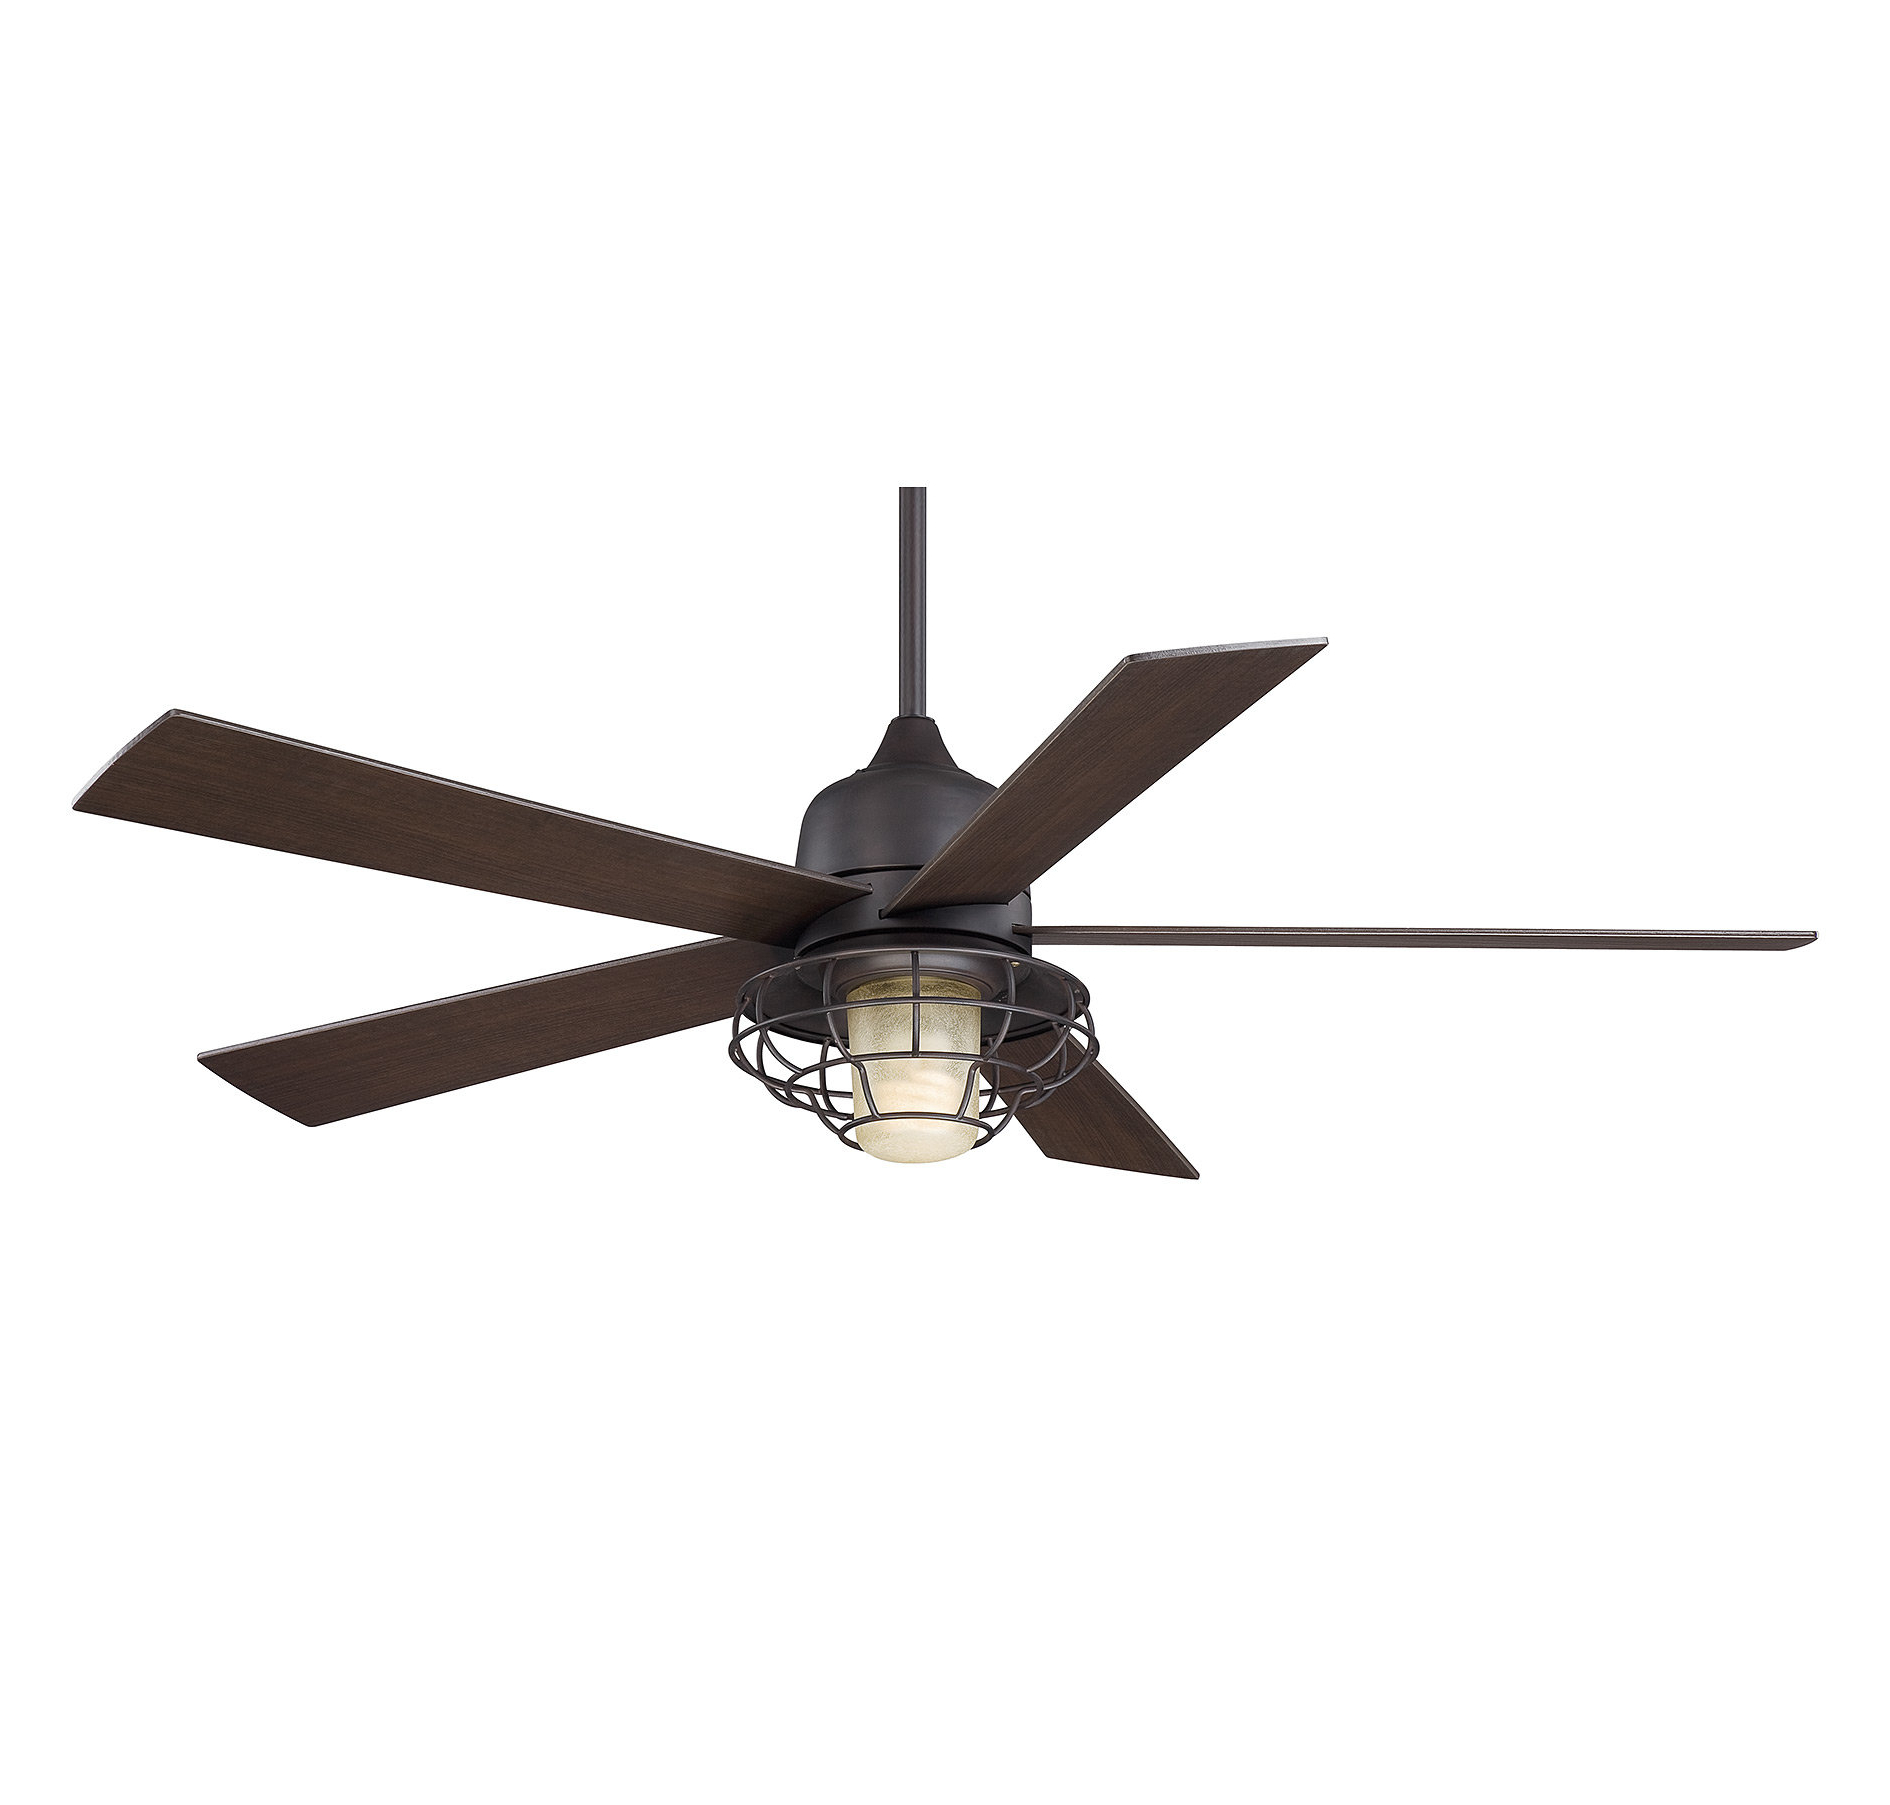 "Cillian 6 Blade Ceiling Fans Pertaining To Popular 52"" Charo Damp Location 5 Blade Ceiling Fan With Remote, Light Kit Included (View 7 of 20)"